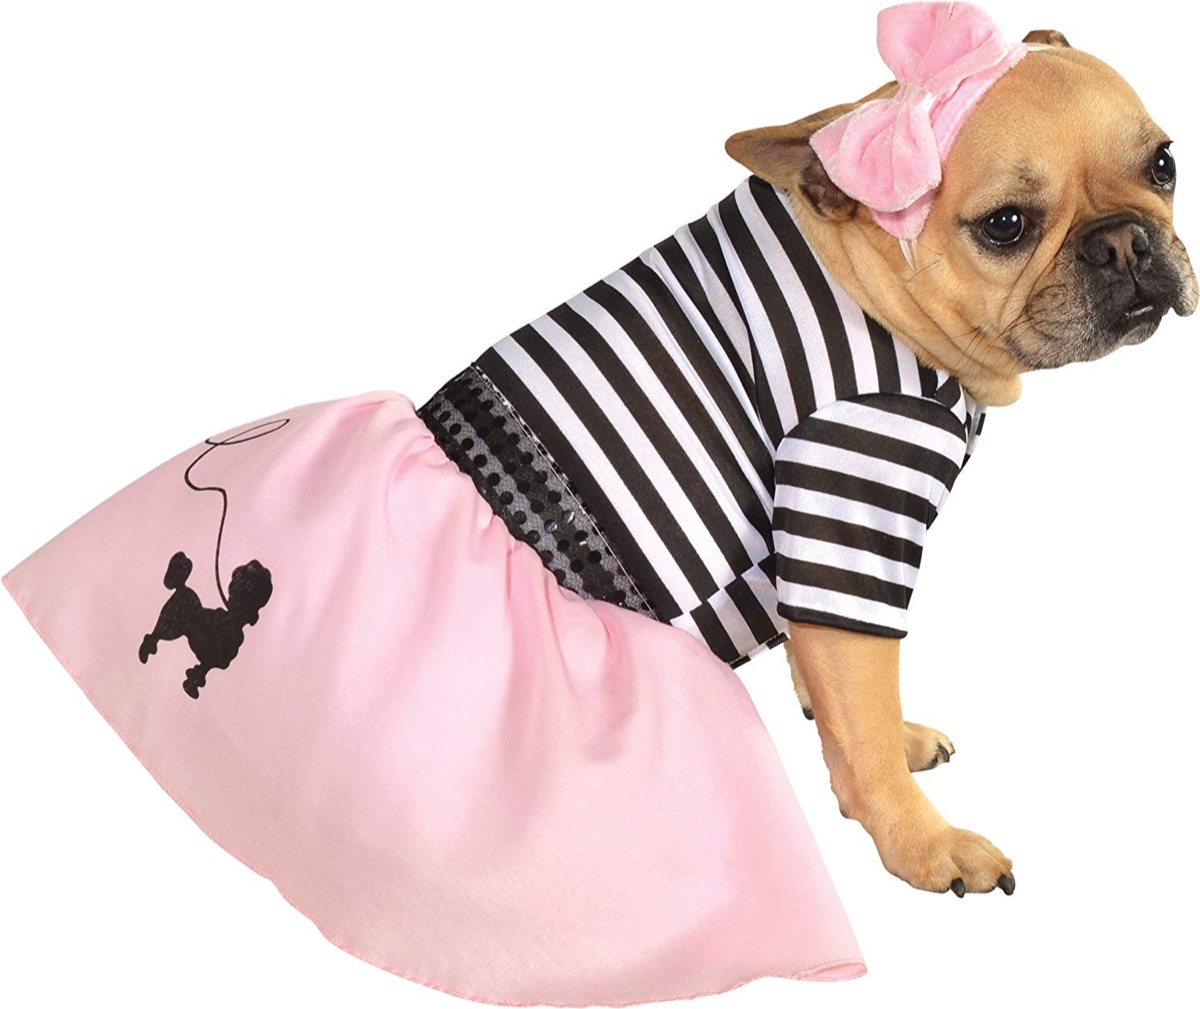 dog in striped shirt and pink skirt, dog halloween costumes